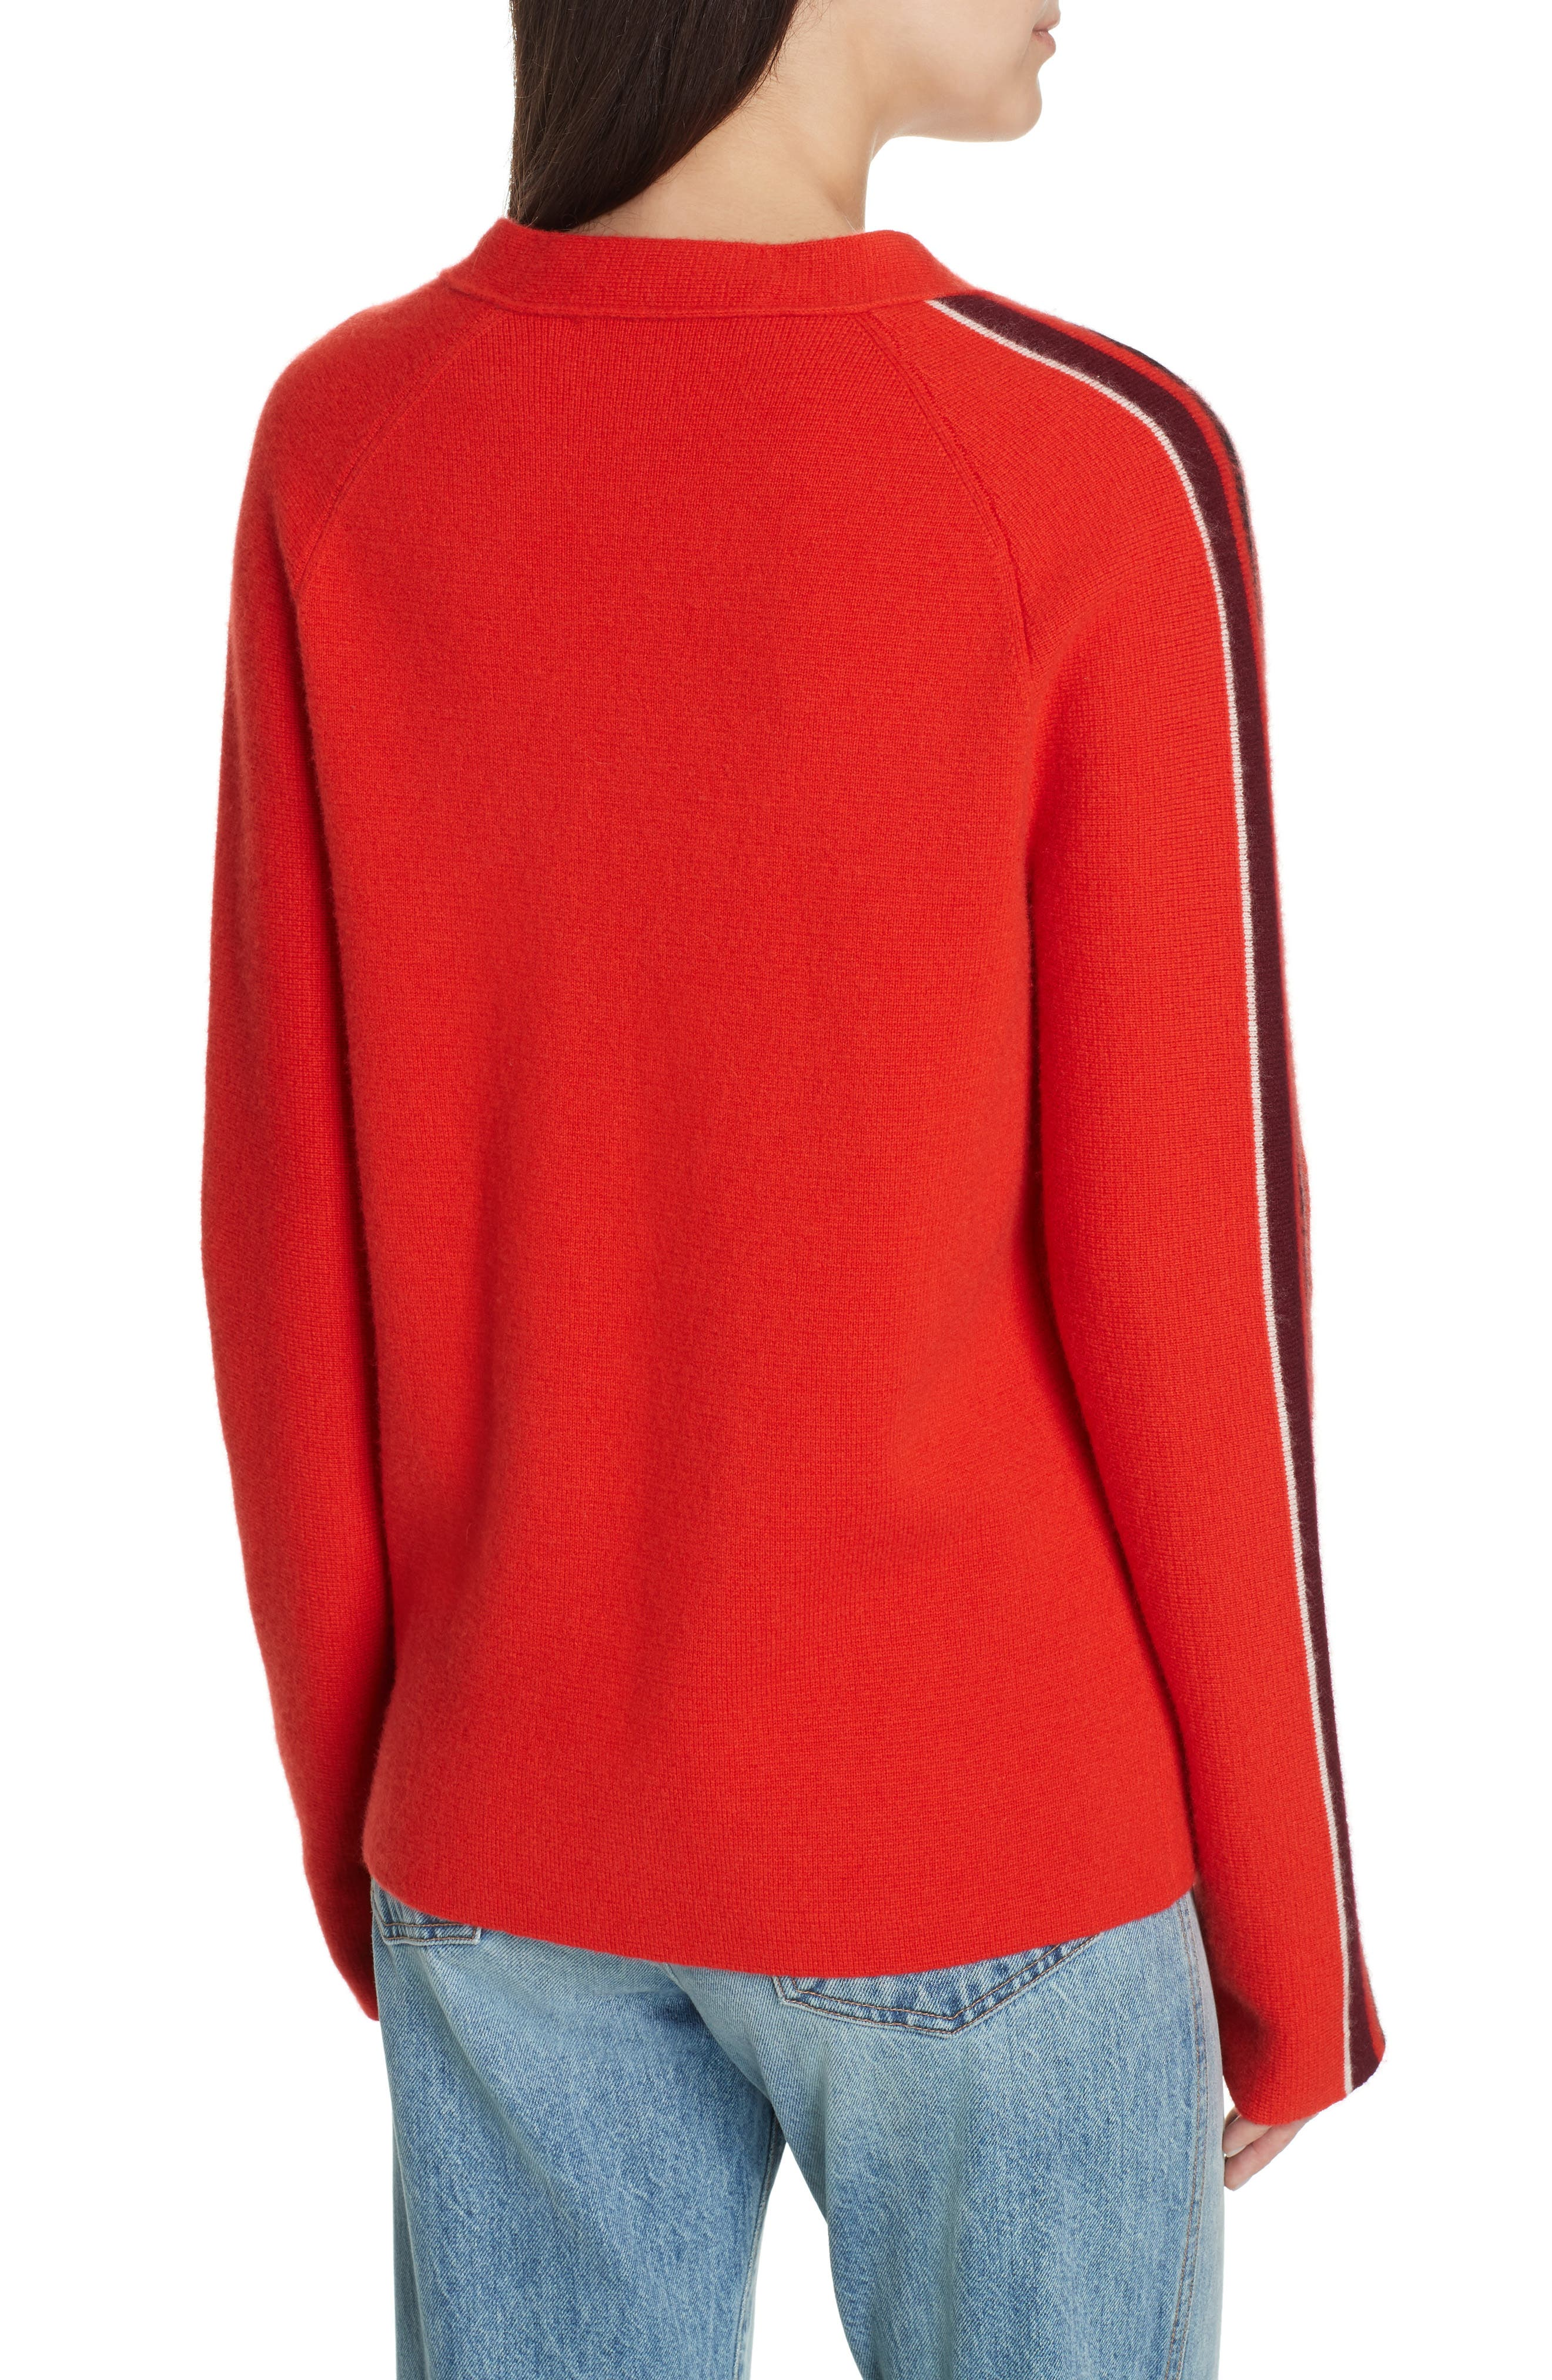 PROENZA SCHOULER, PSWL Stripe Sleeve Merino Wool & Cashmere Cardigan, Alternate thumbnail 2, color, RED COMBO